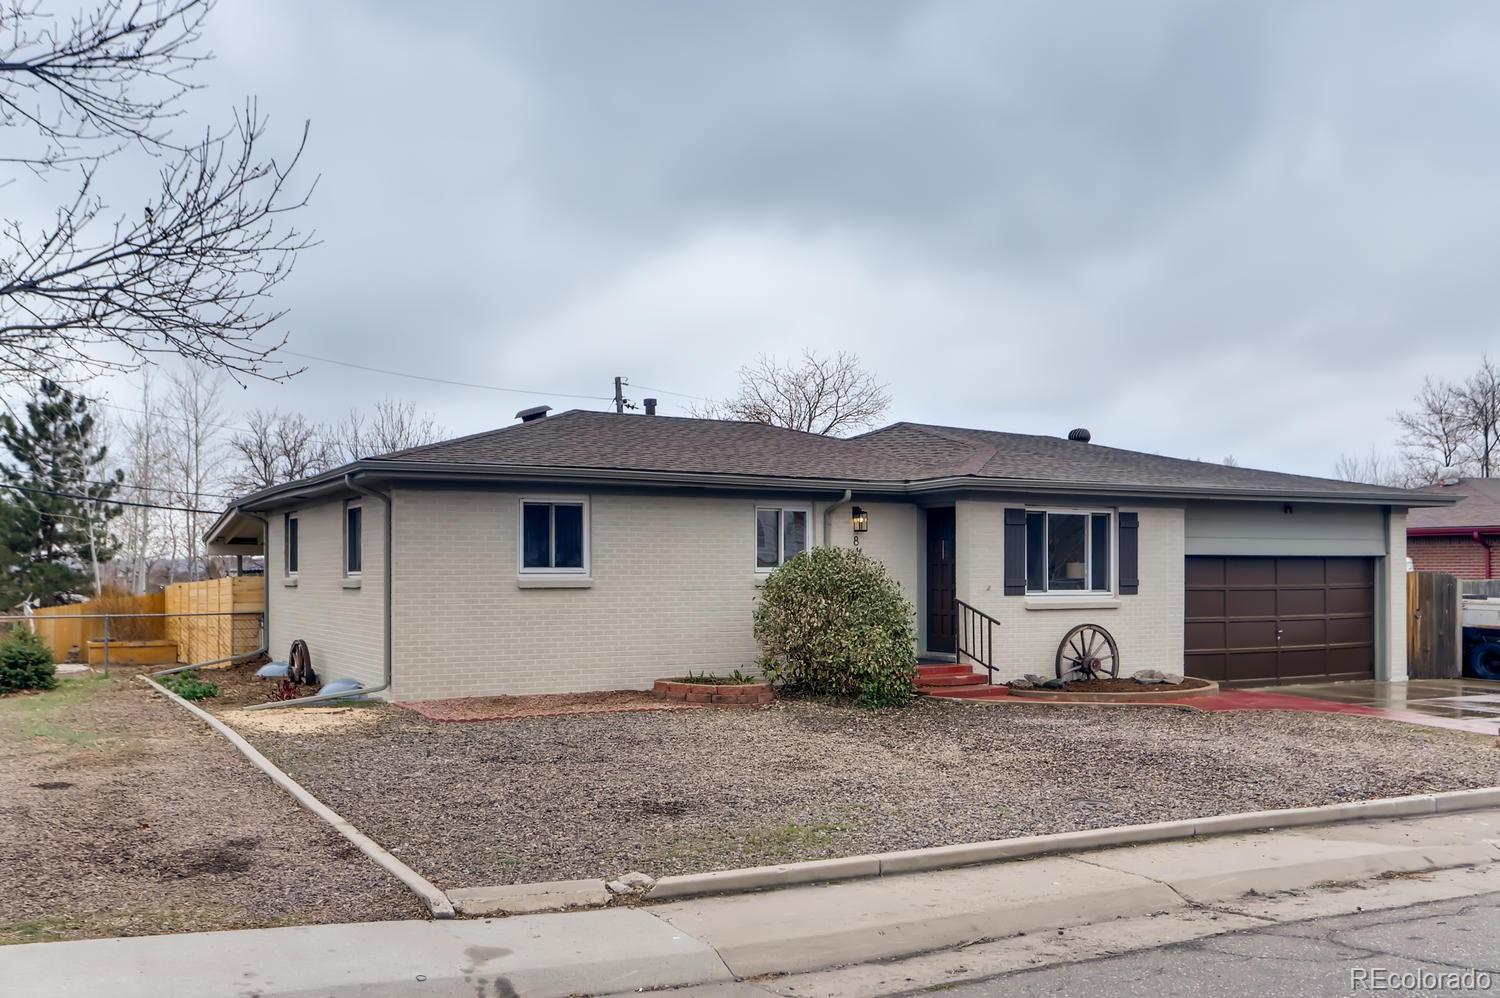 MLS# 2830054 - 3 - 8408 W 62nd Place, Arvada, CO 80004